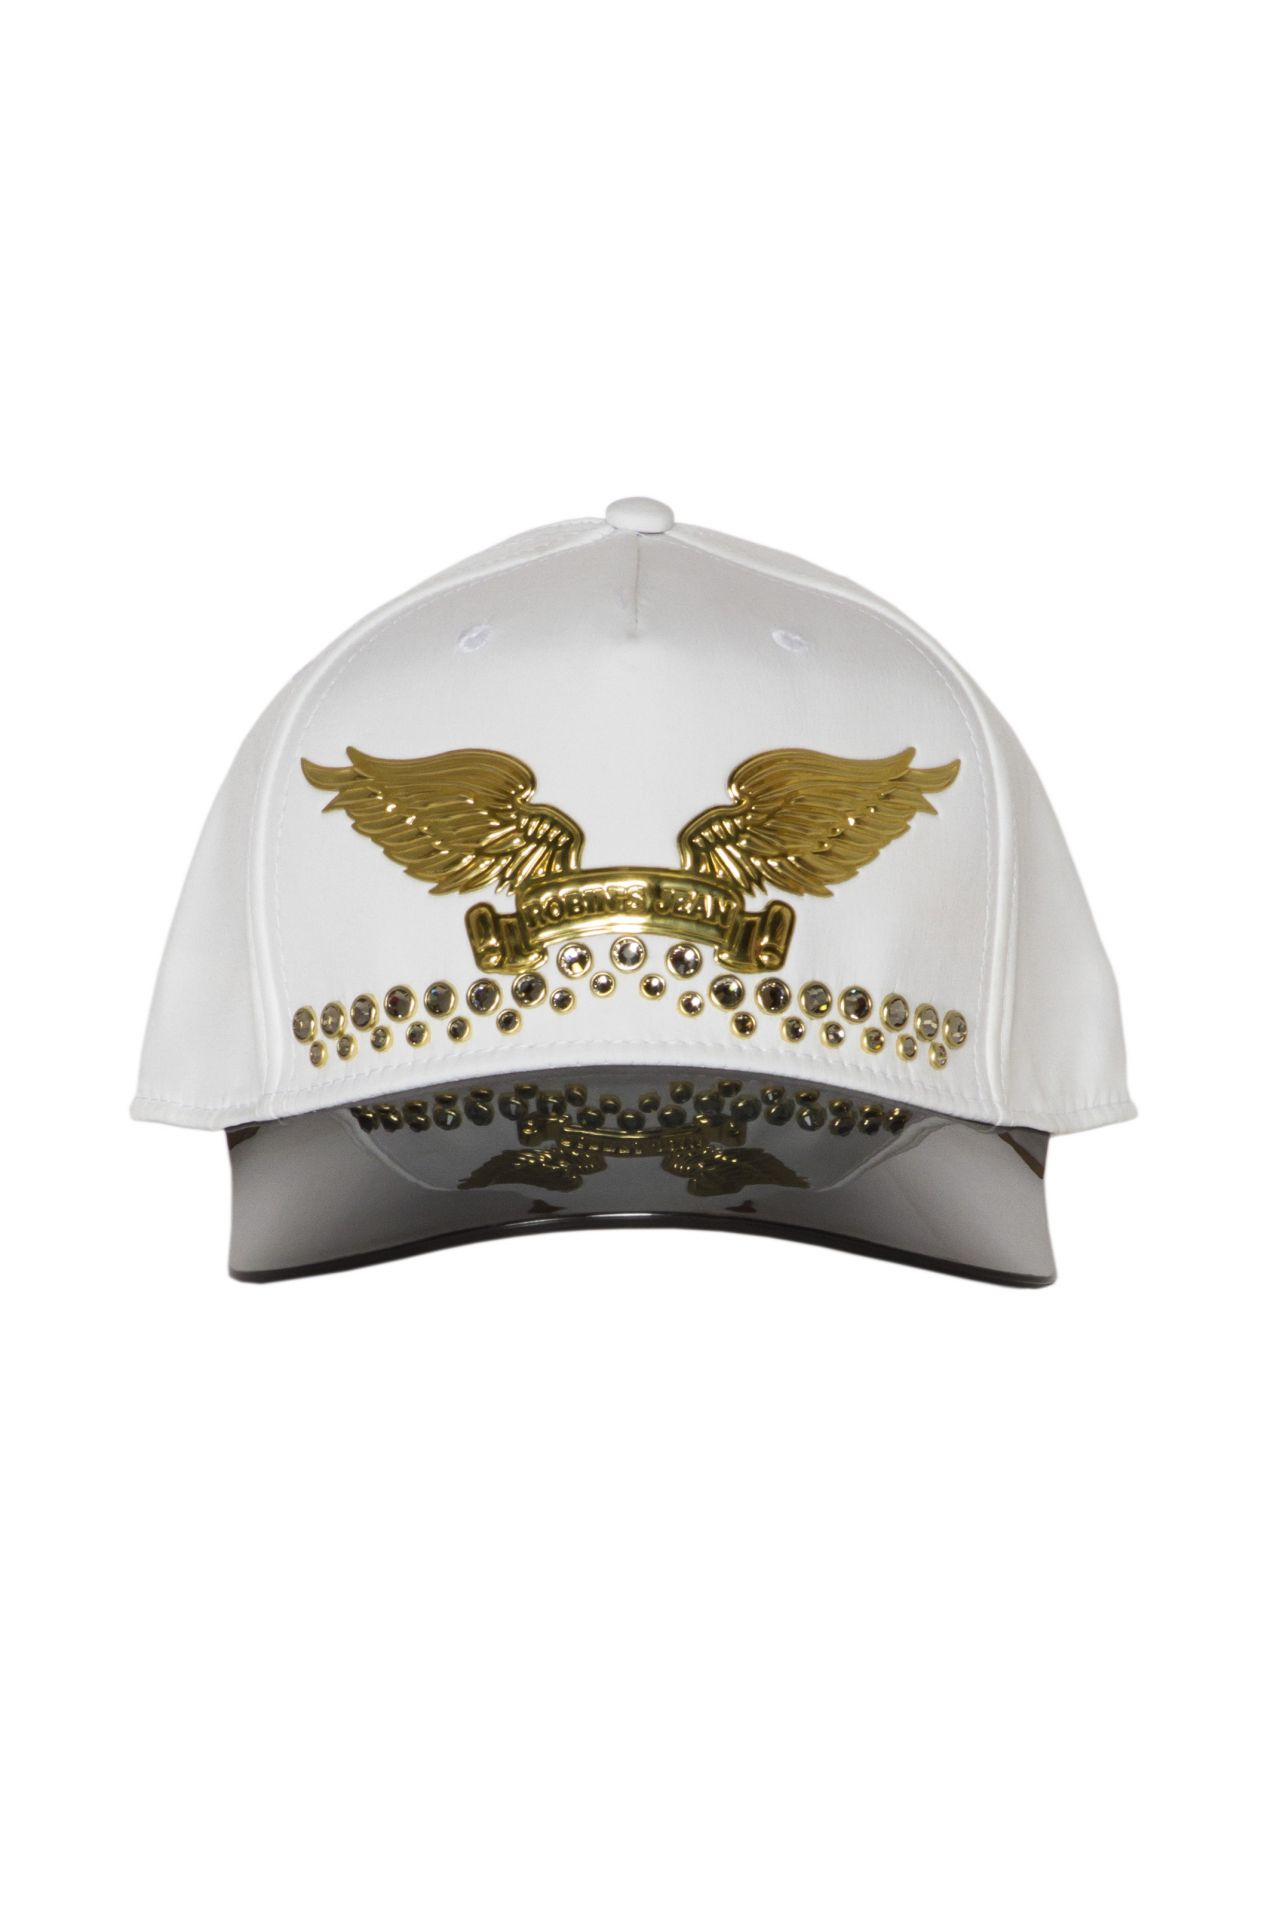 VISOR CAP IN WHITE WITH DOUBLE ROW CRYSTALS